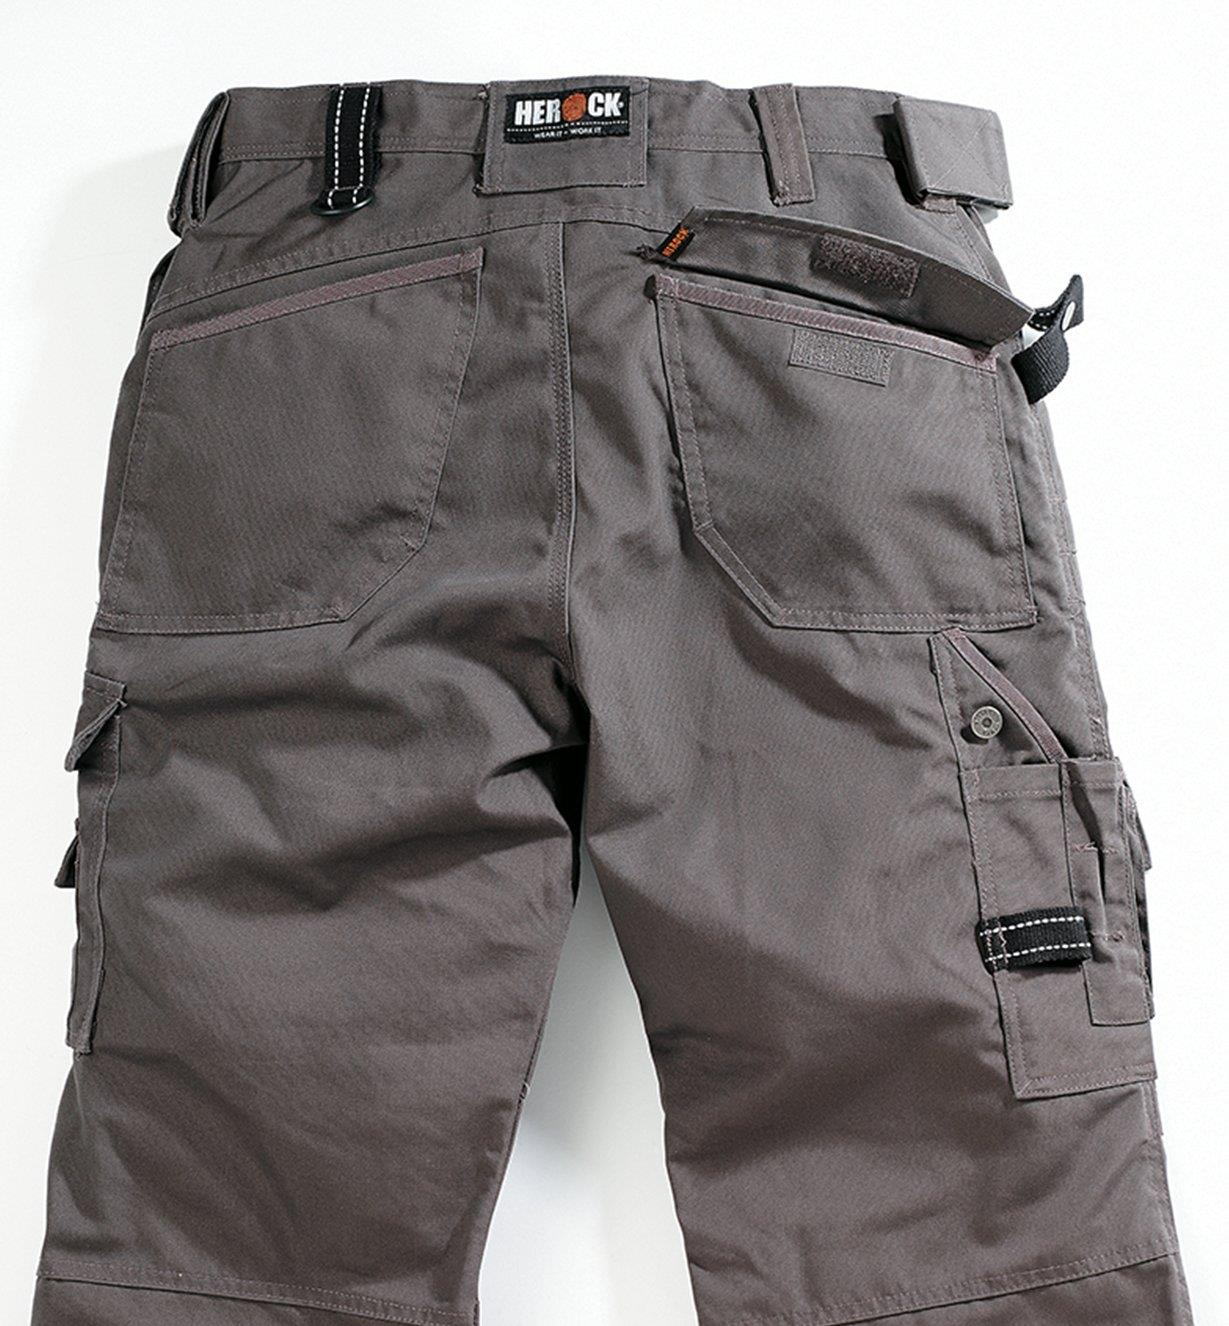 Back view of Gray Medium-Weight Pants